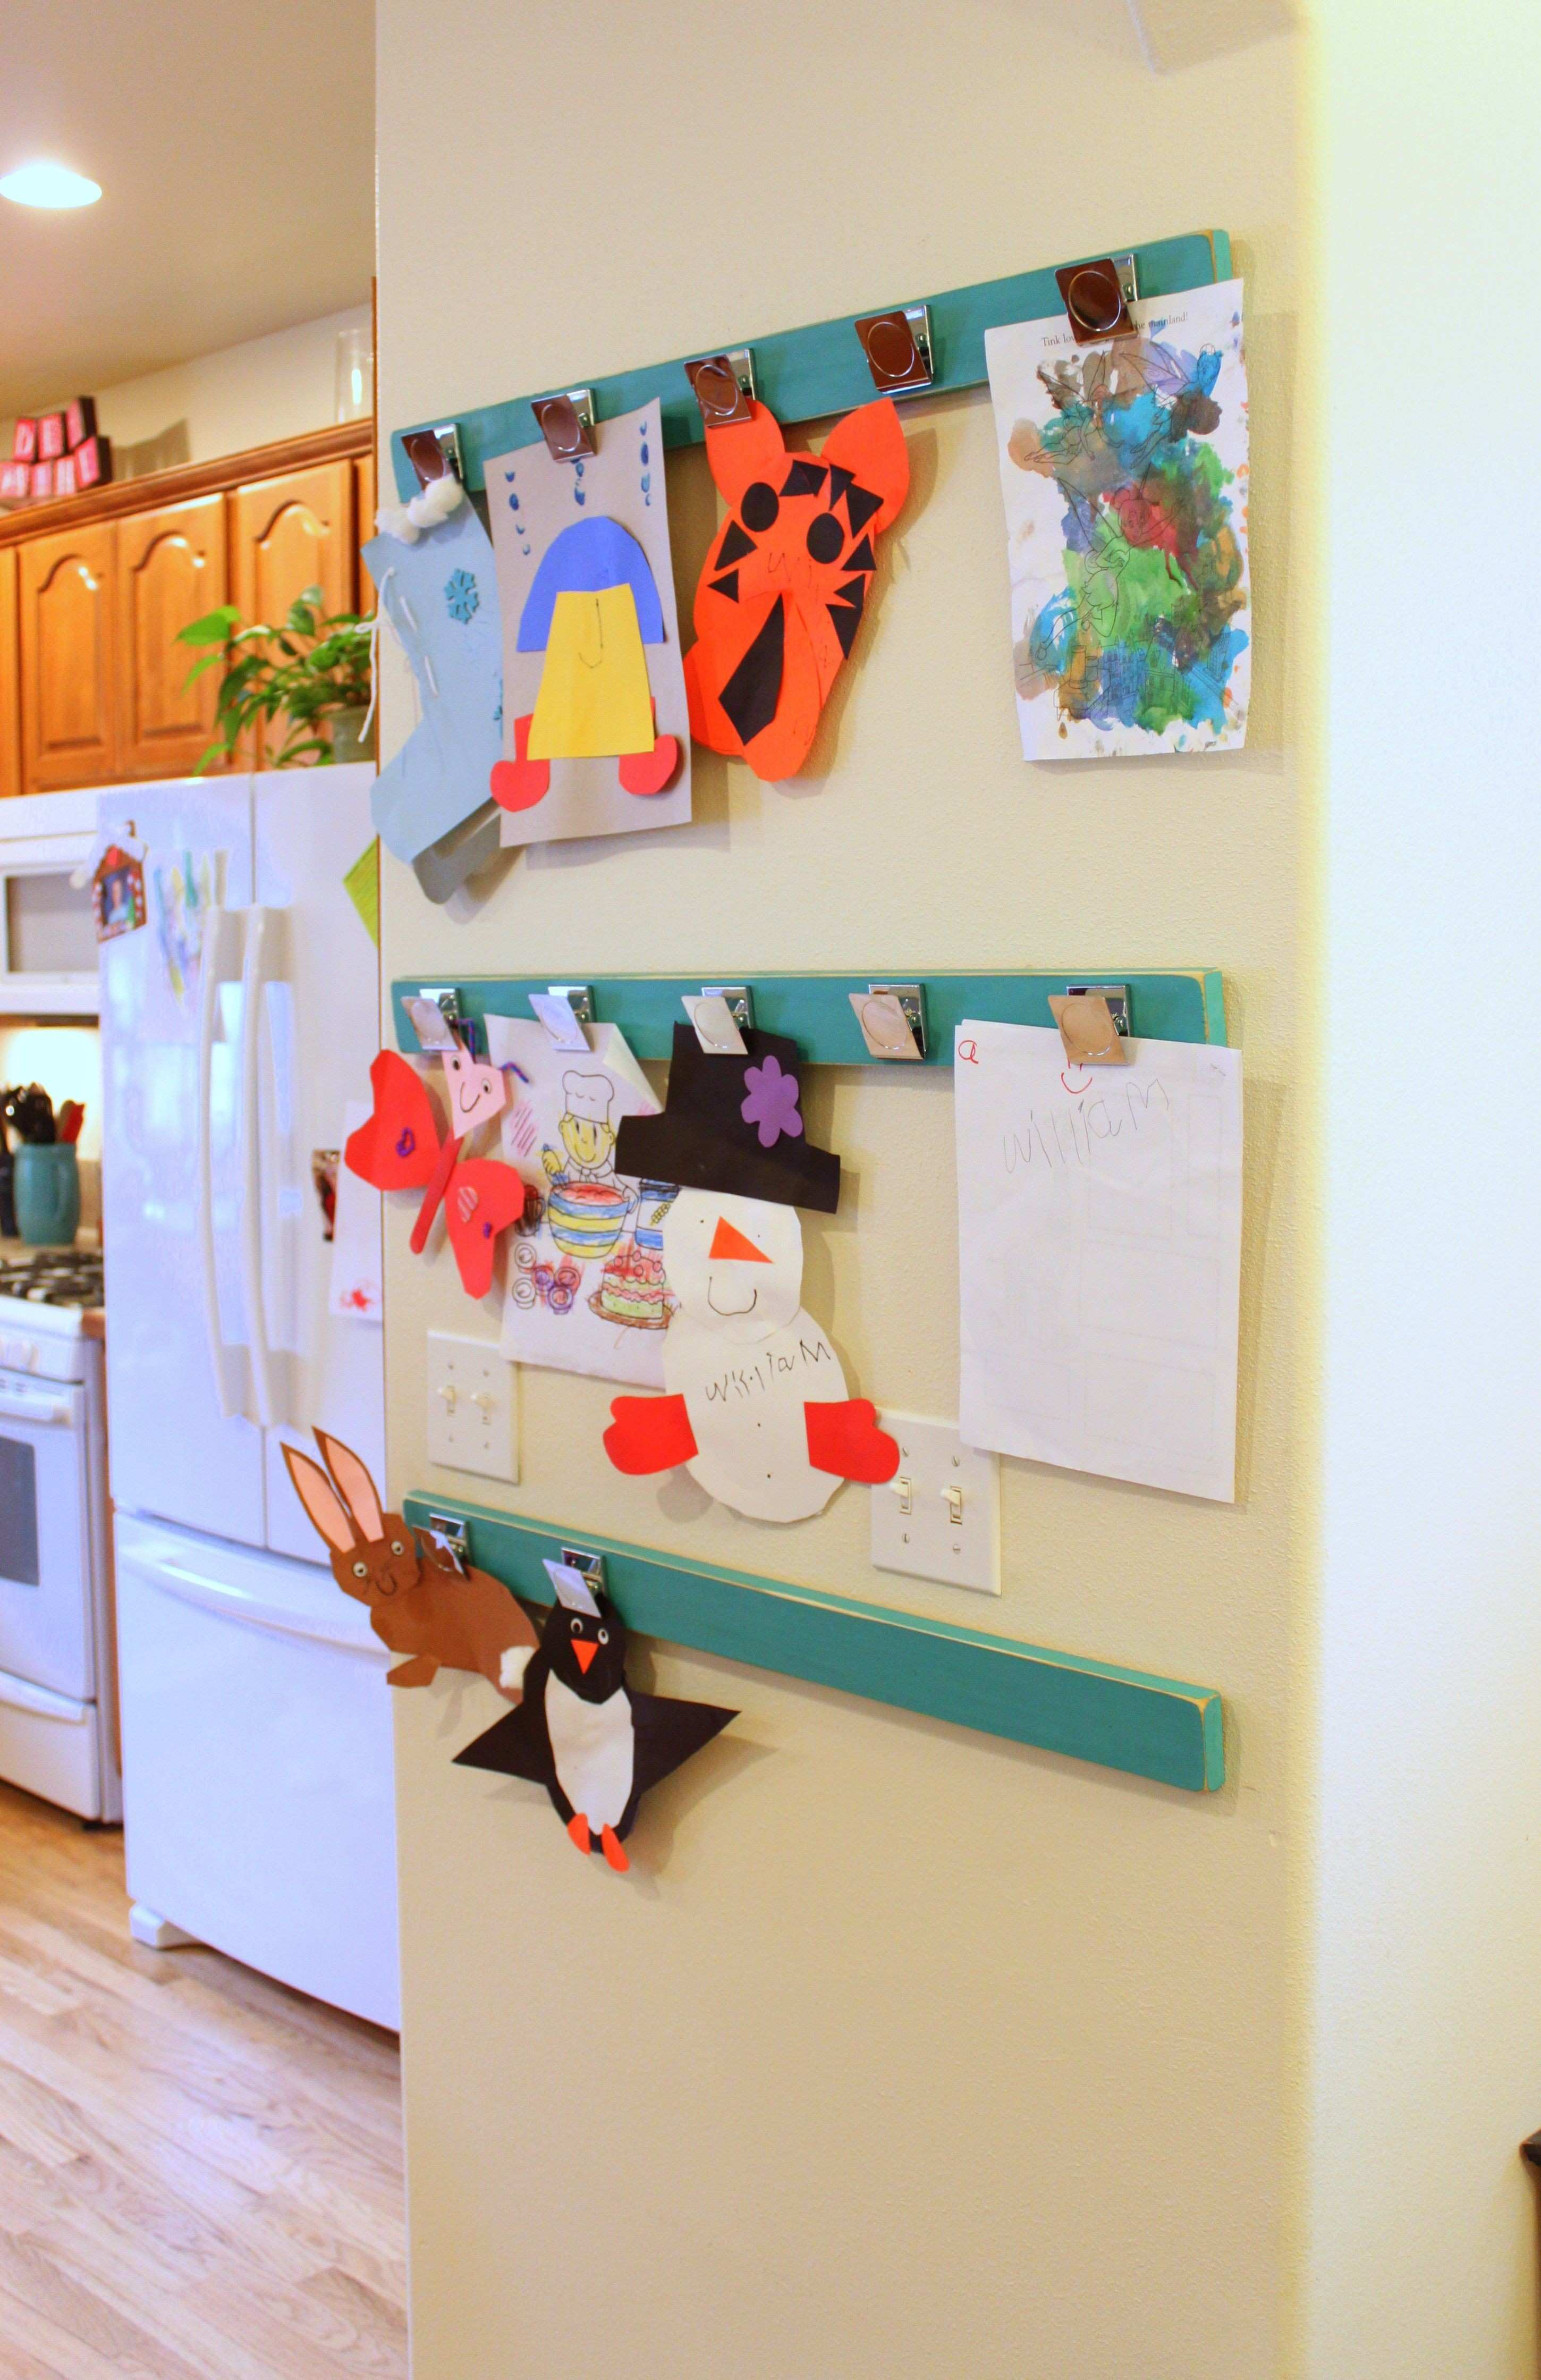 Thanks Pinterest for the inspiration for my kids art display wall